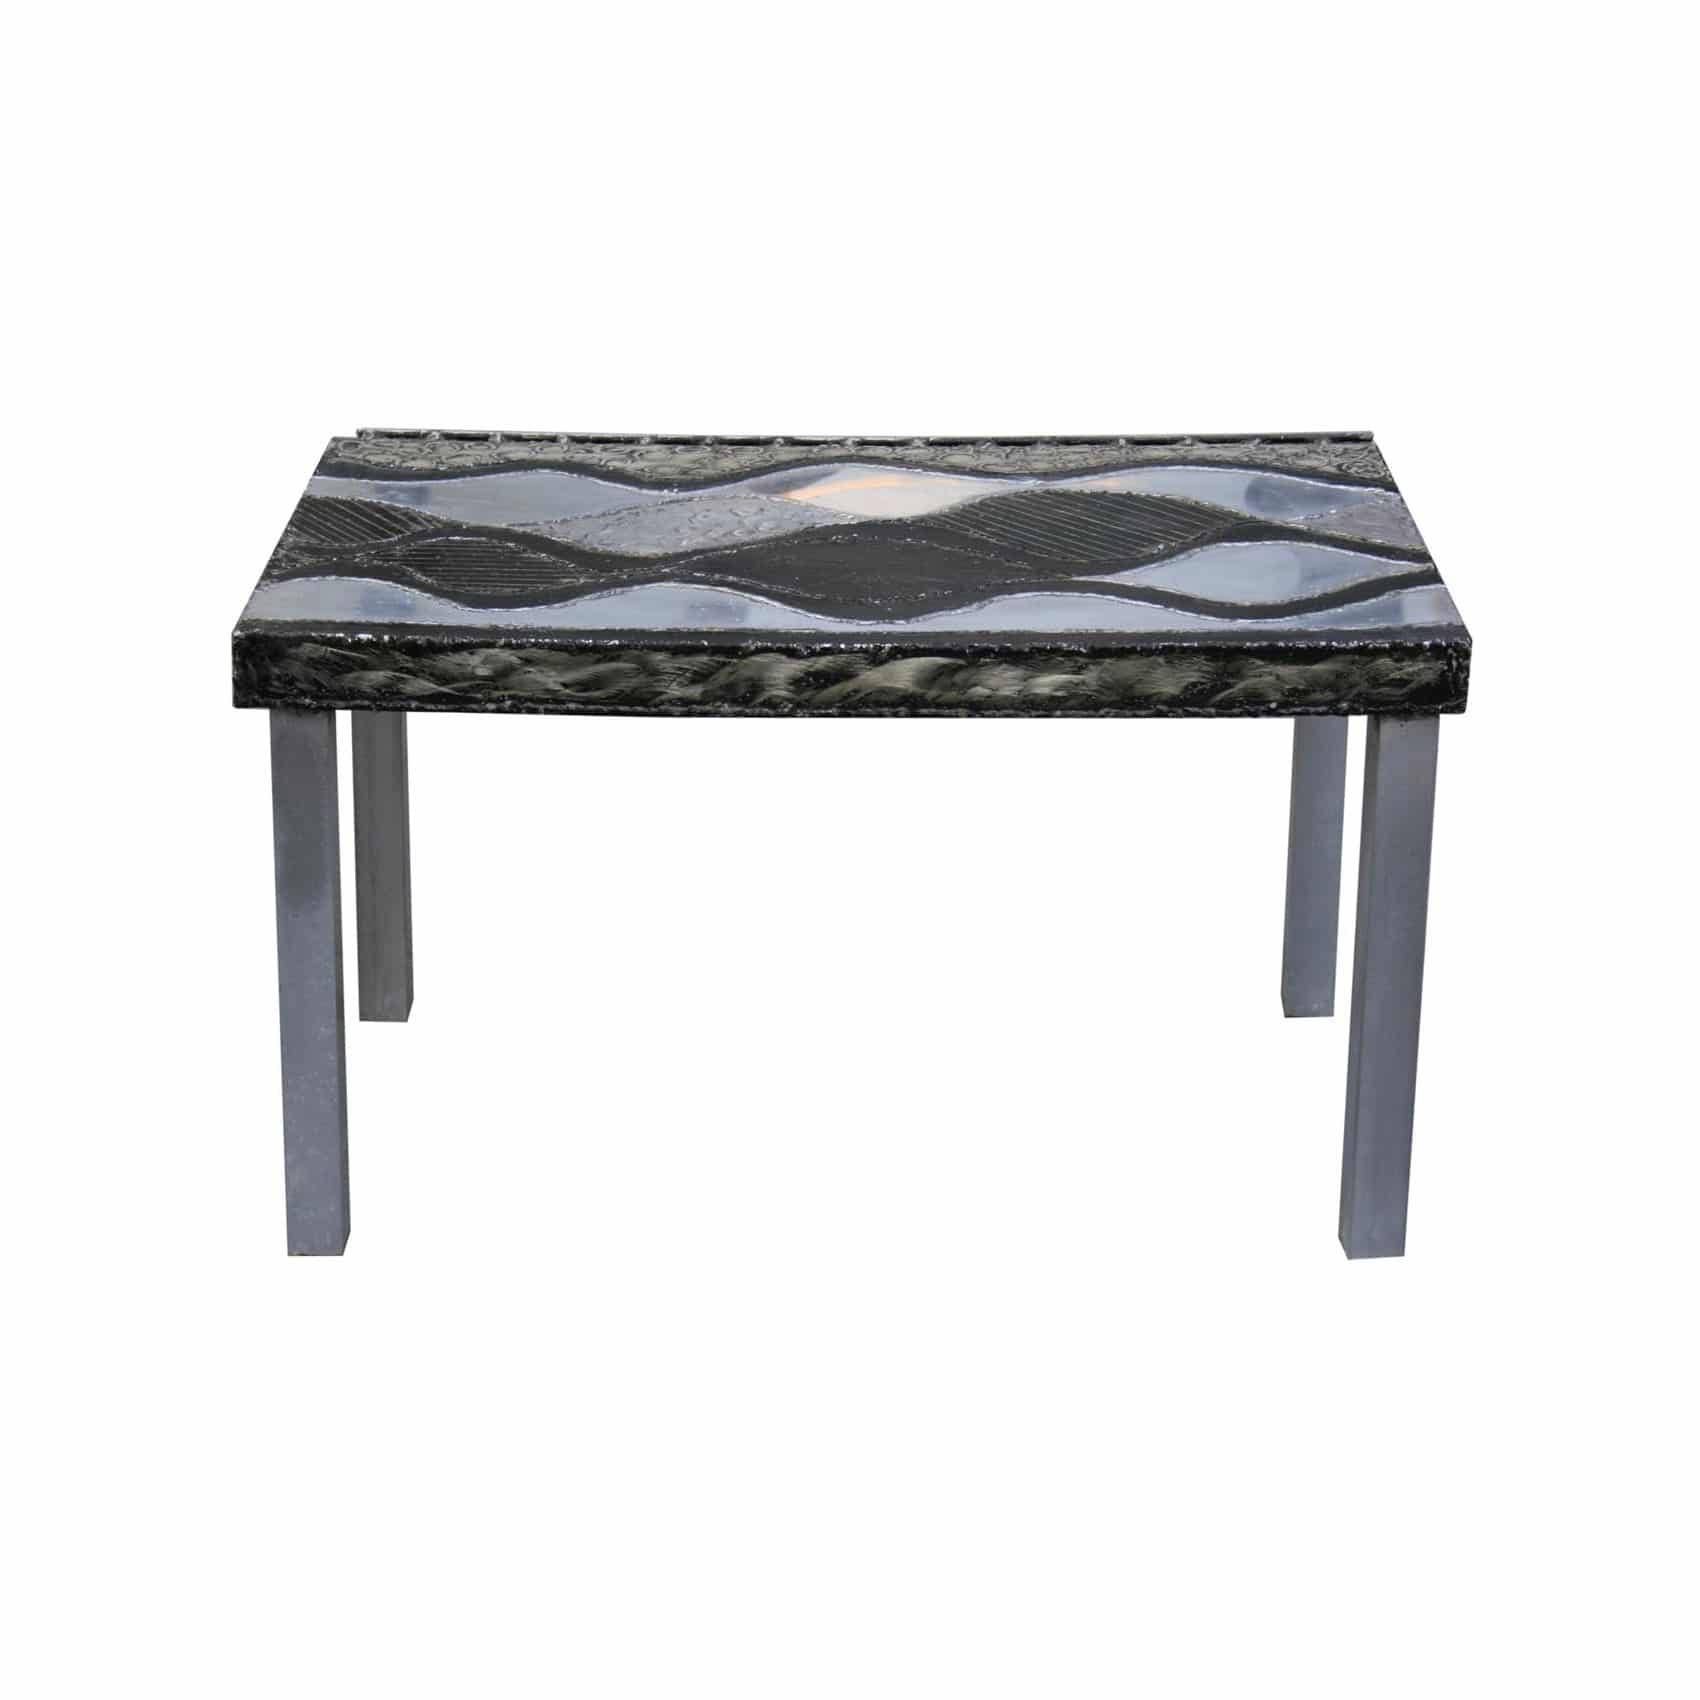 paul evans argente end table todd merrill studio. Black Bedroom Furniture Sets. Home Design Ideas